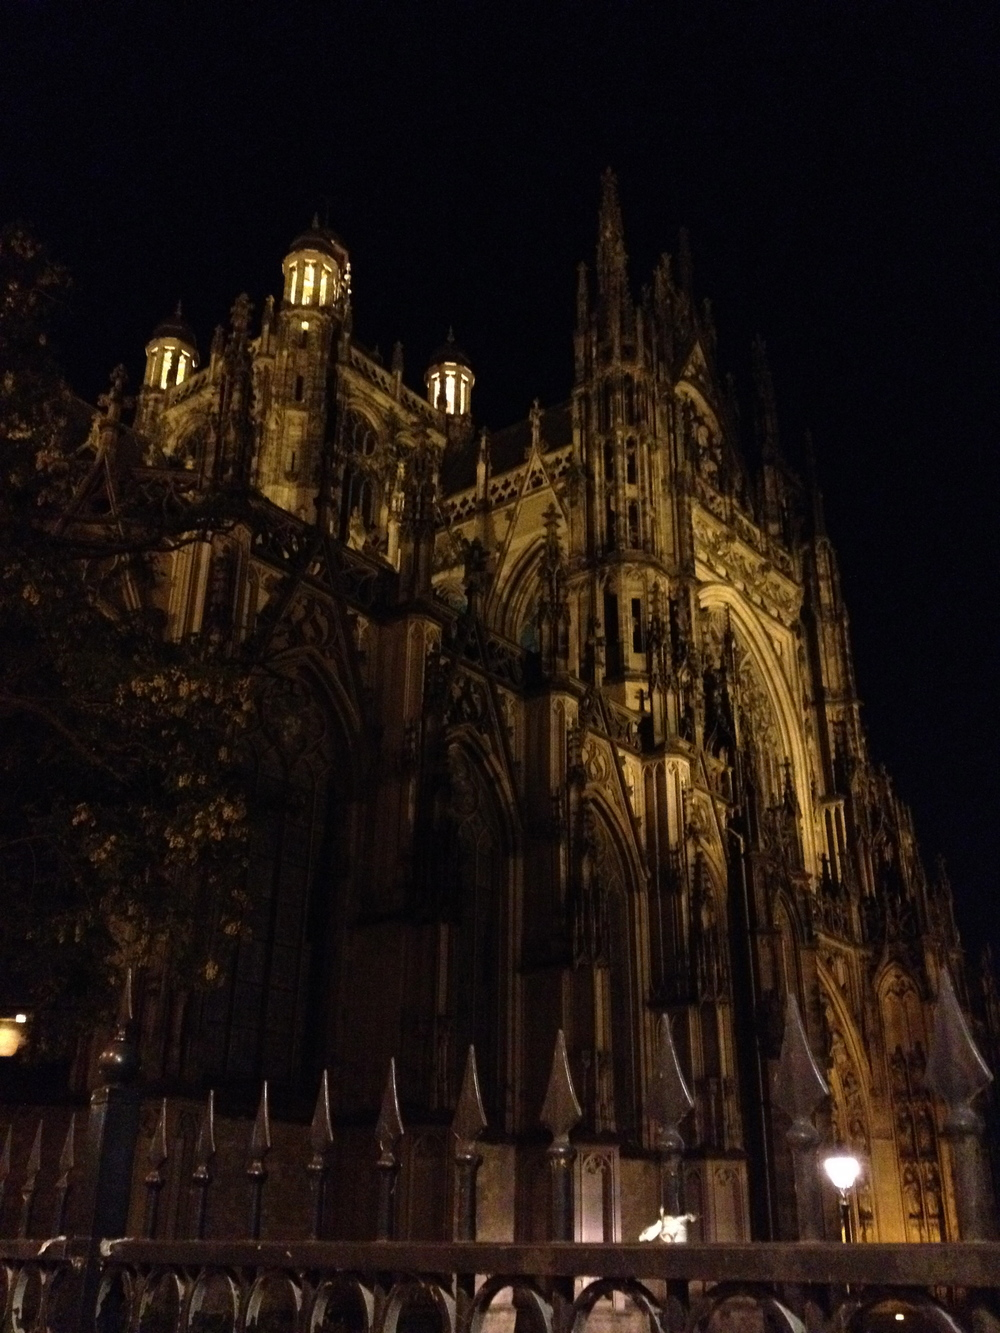 Saint John's Cathedral at night in downtown Den Bosch.